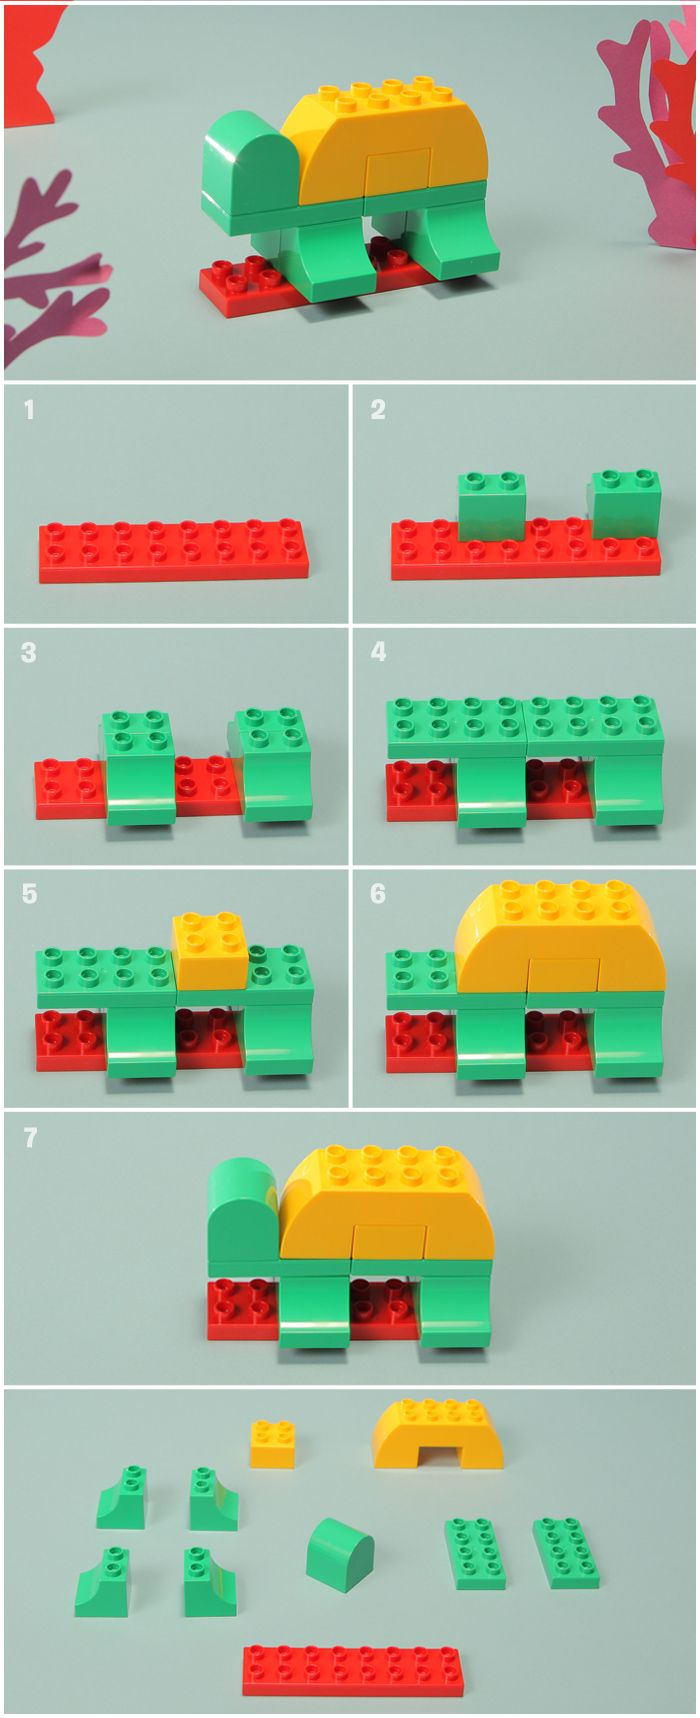 Speed demon racing around the house at 200 miles an hour? Talkathon toddler rambling at 200 words a second? Slow that preschooler's pace down with this calming, and cute, LEGO® DUPLO® DIY turtle.